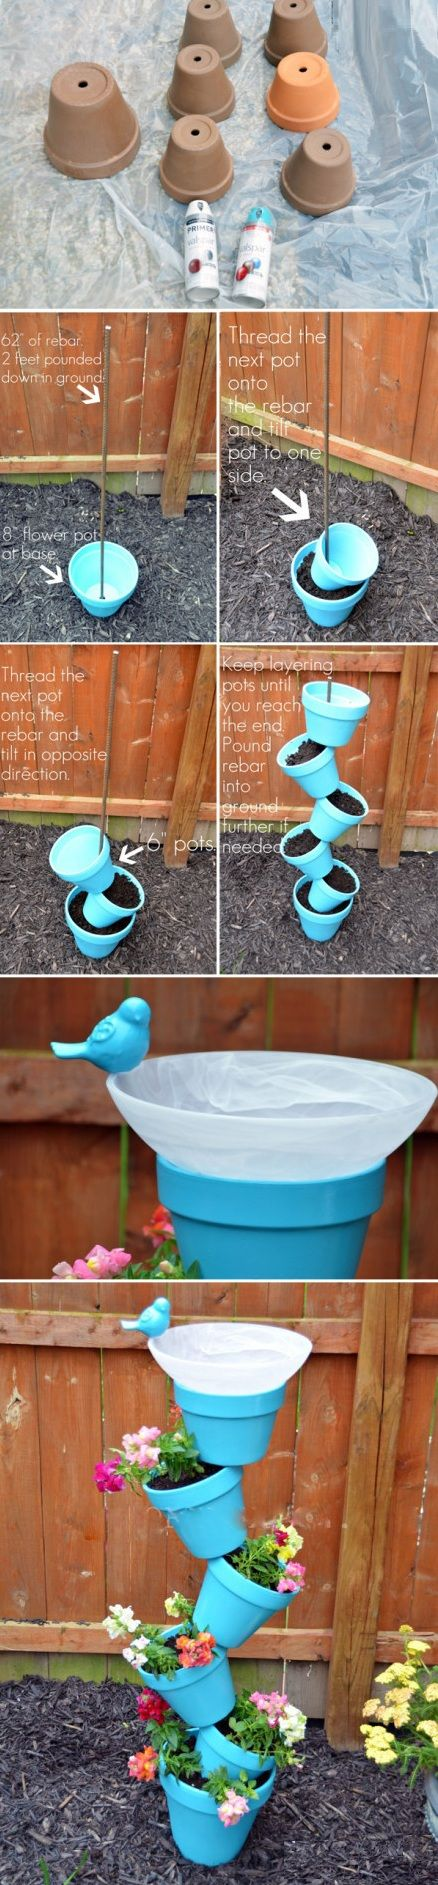 D.I.Y. Topsy-Turvy Planter & Birdfeeder: very cute and inexpensive...a great craft to get the kids' help on!